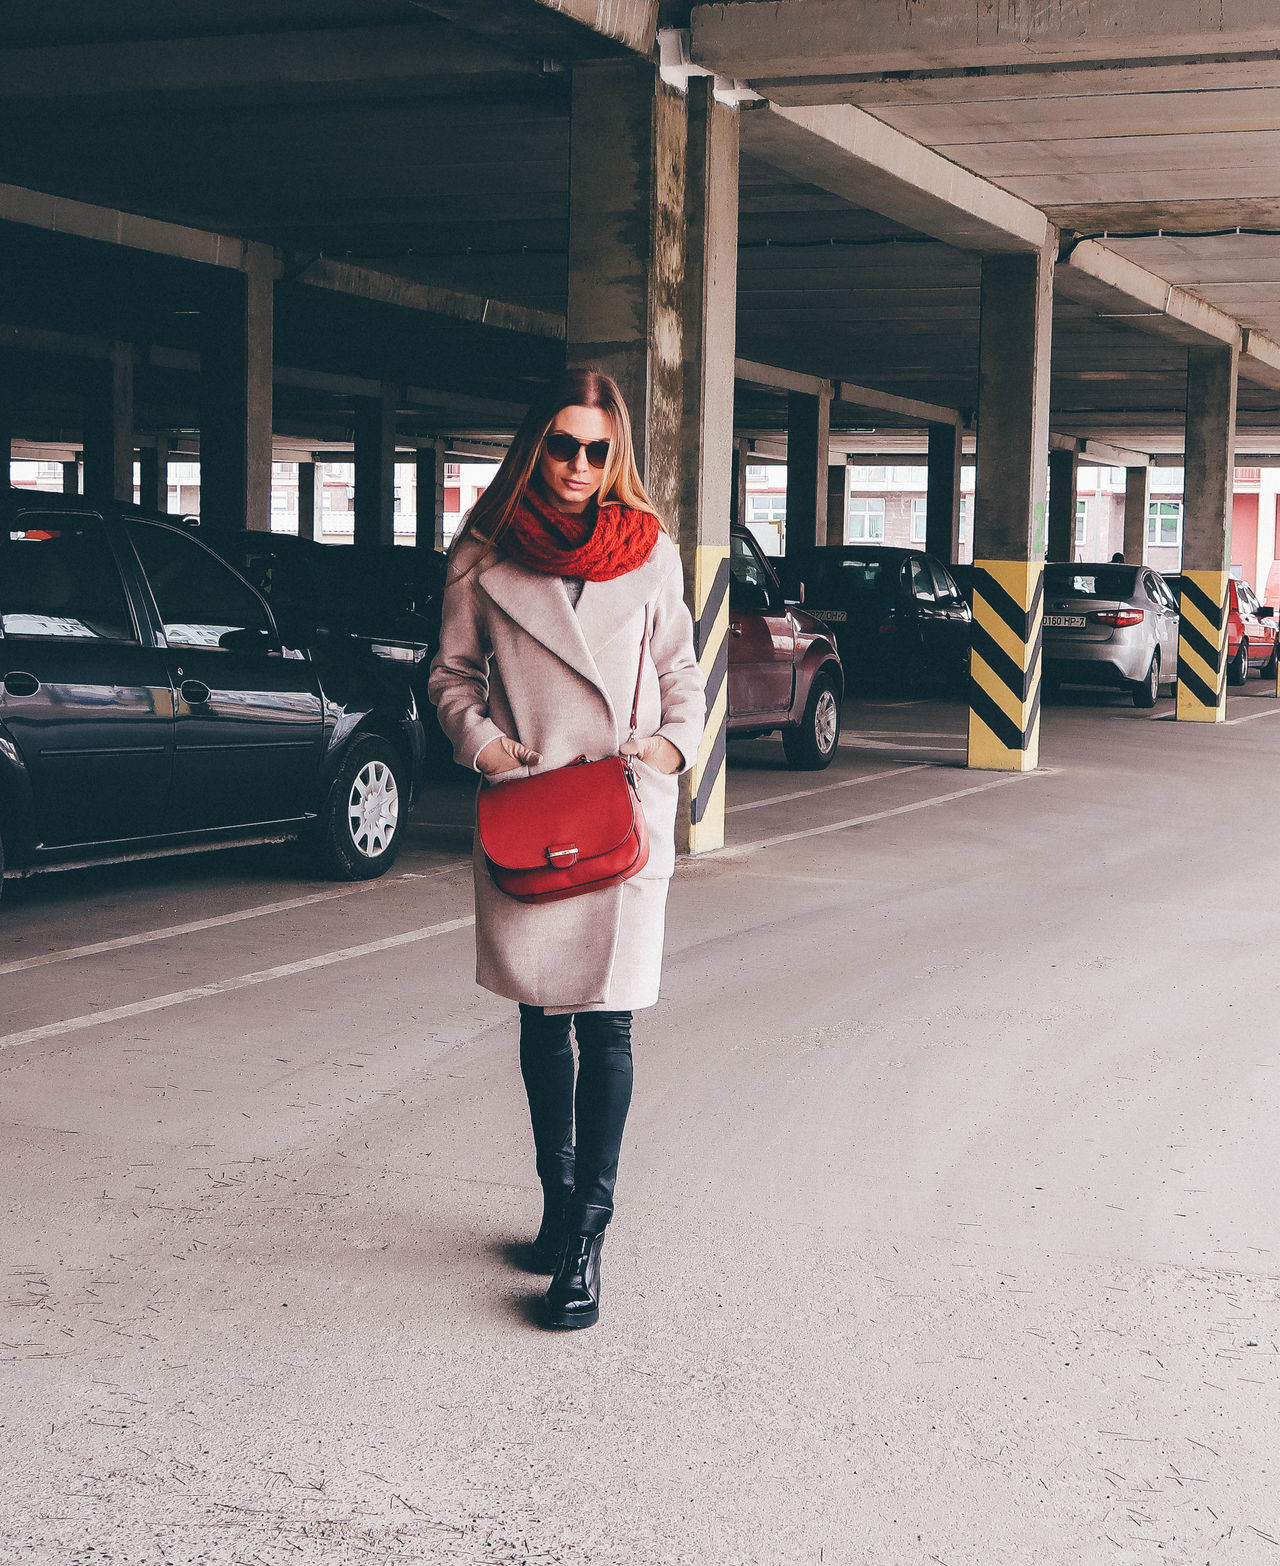 Young stylish woman on the street Accesories Adult Coat Fashion Filter Instagram Lookbook Minimalism Model One Person Only Women Portrait Street Style Streetphotography Stylish Urban Style Women